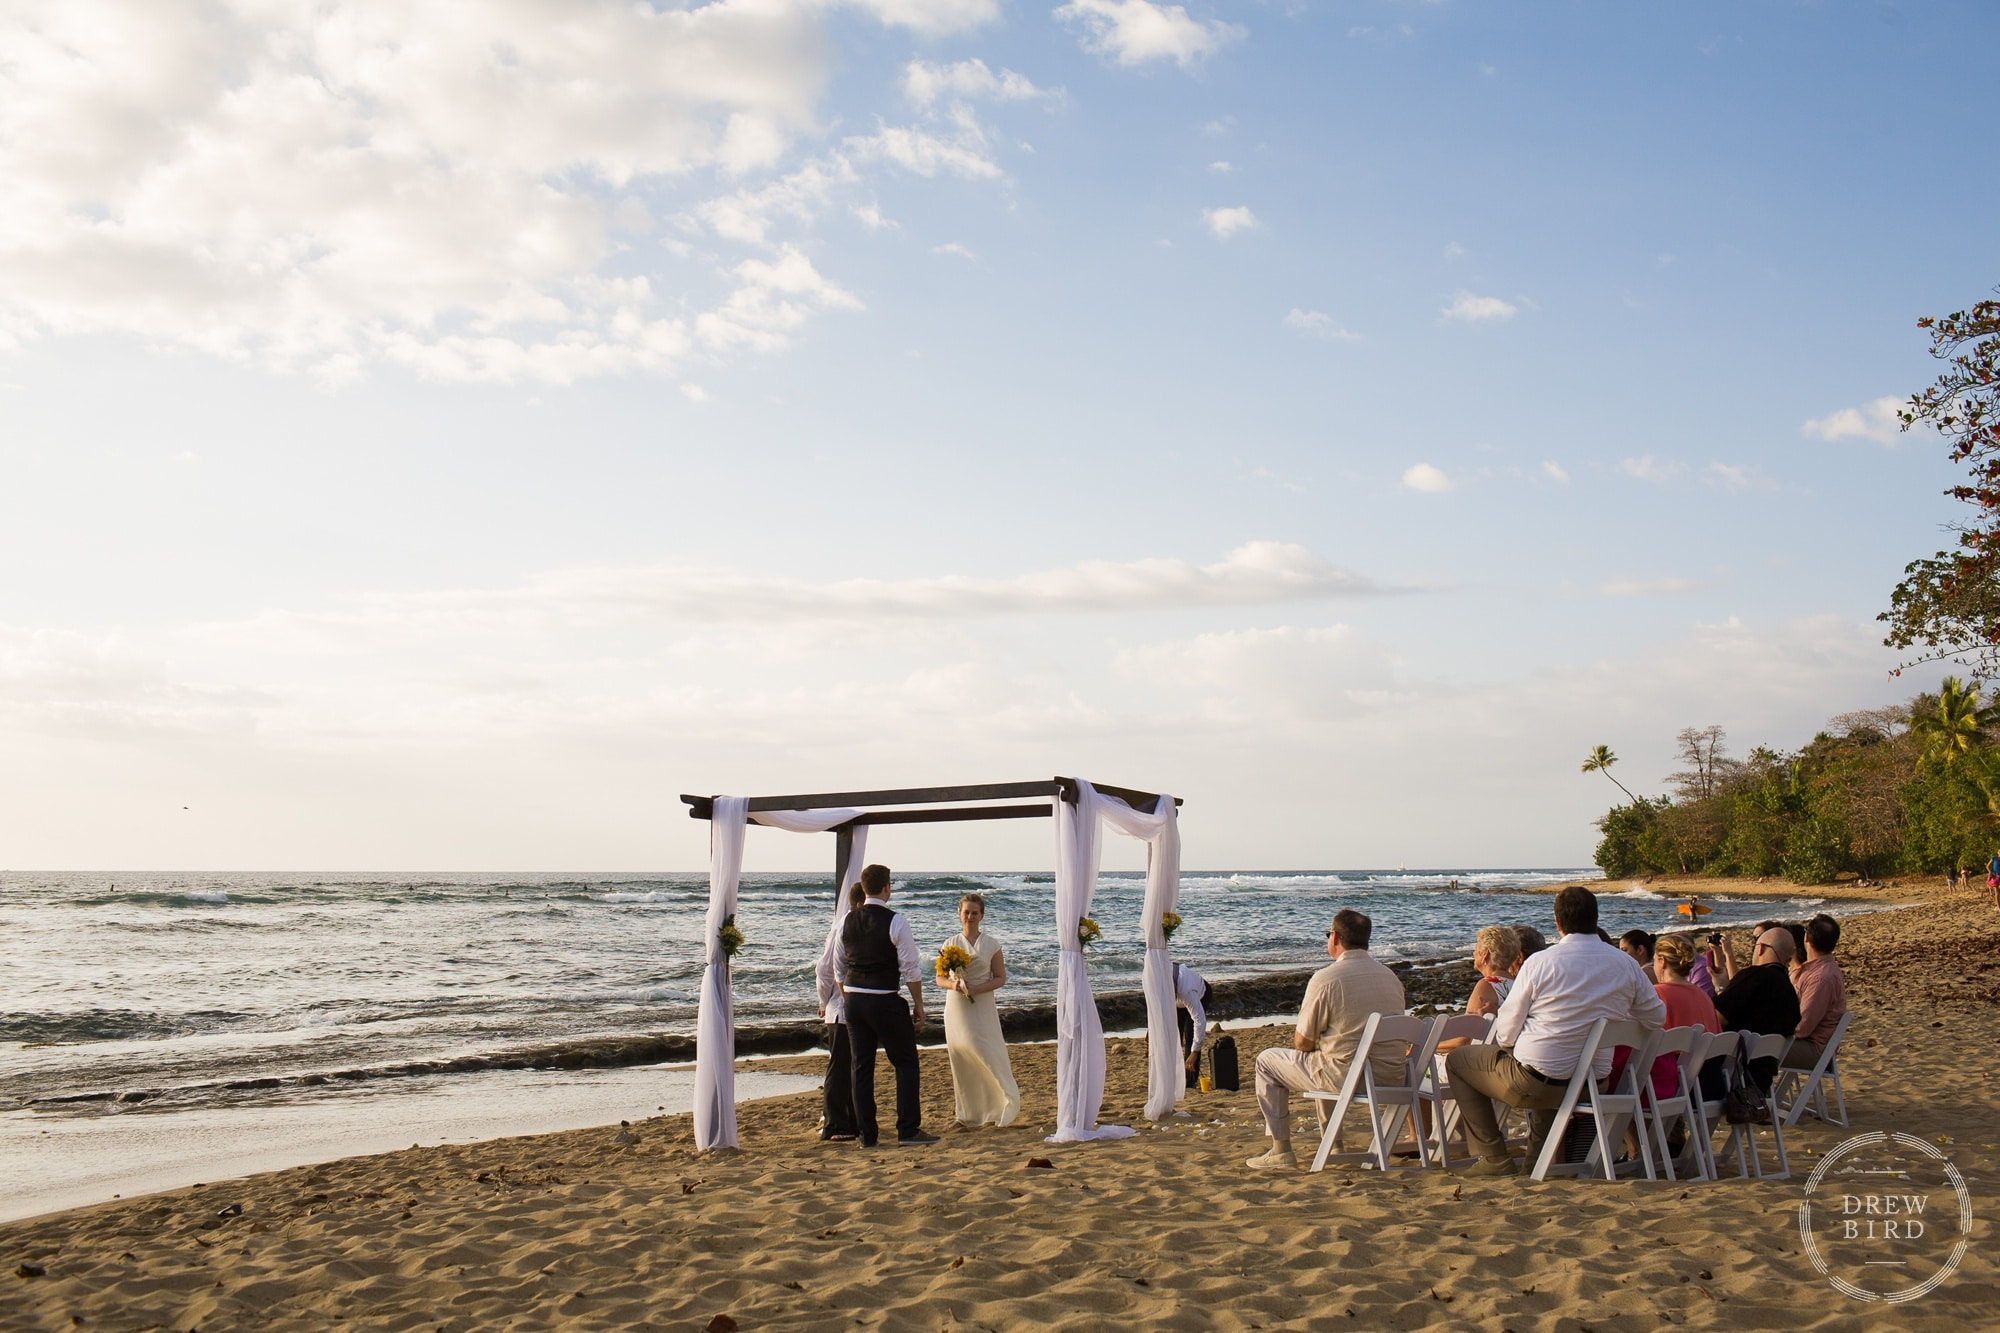 Beach wedding ceremony. Bride and groom standing in sand under chuppah. Villa at Maria's Beach. Rincon, Puerto Rico destination wedding photographer Drew Bird.